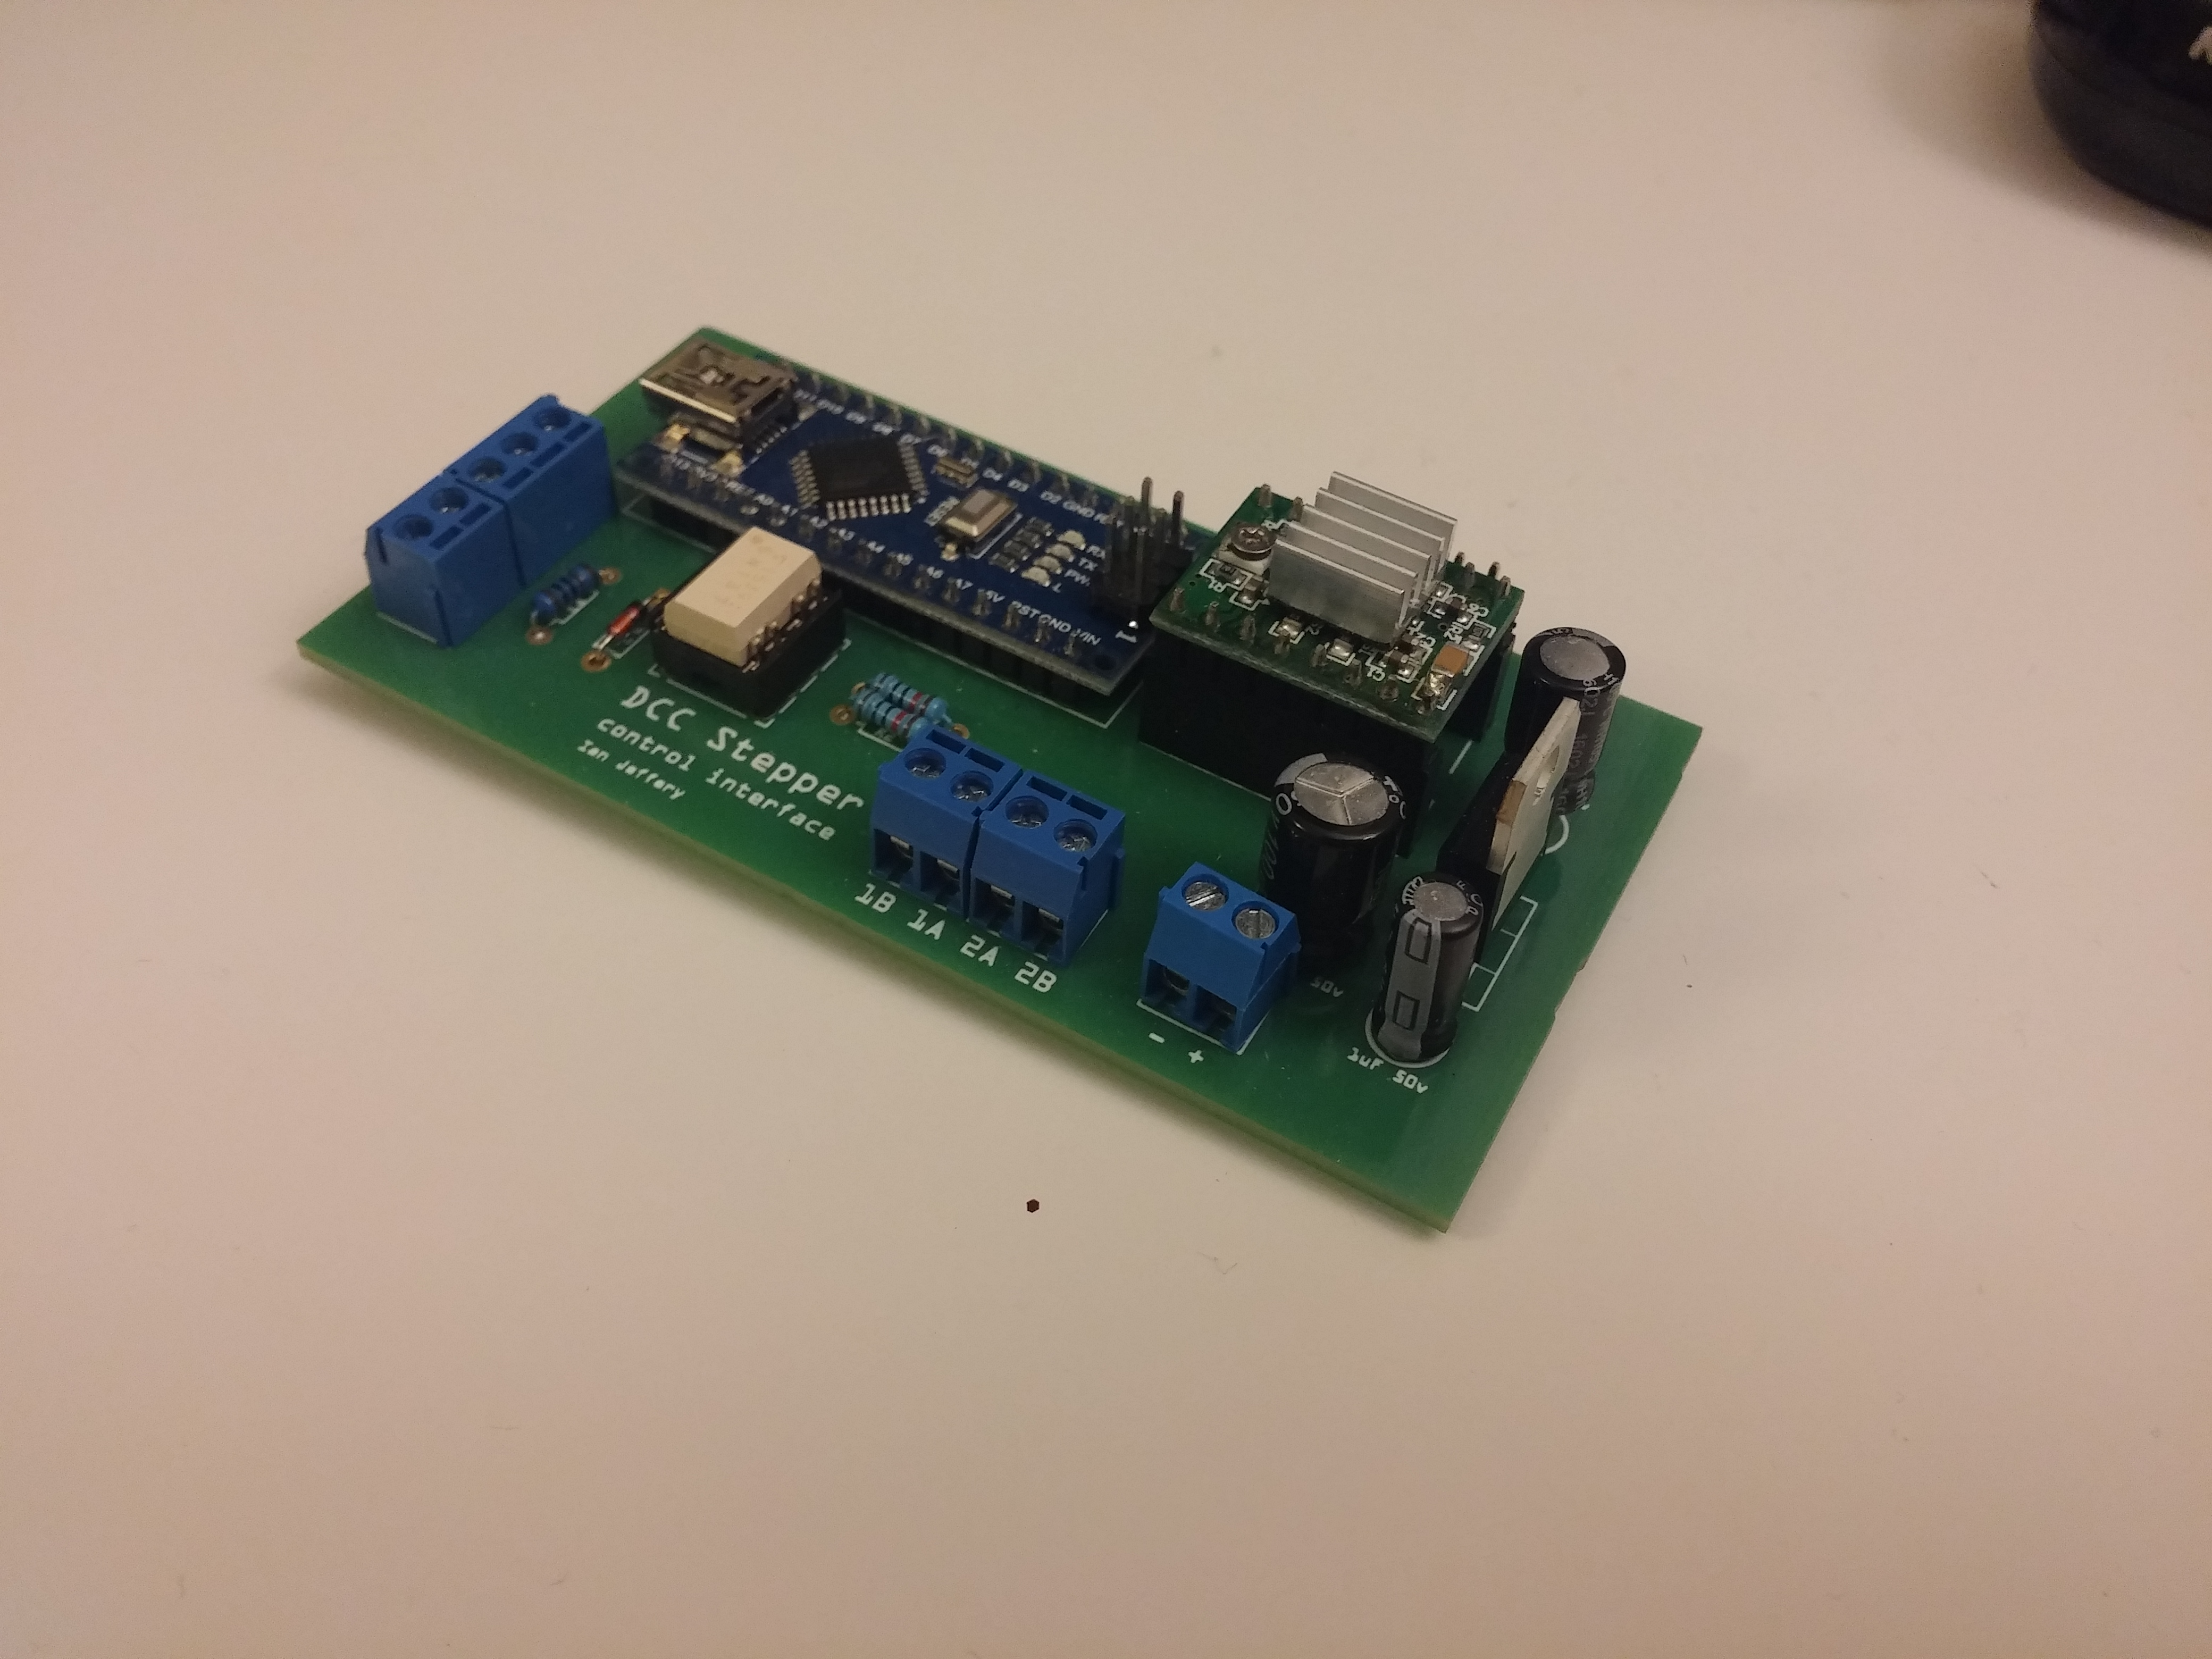 Model Railway Dcc Turntable Accessory Decoder For Arduino Nano Kit Power Supply Stepper Motor Drive A May